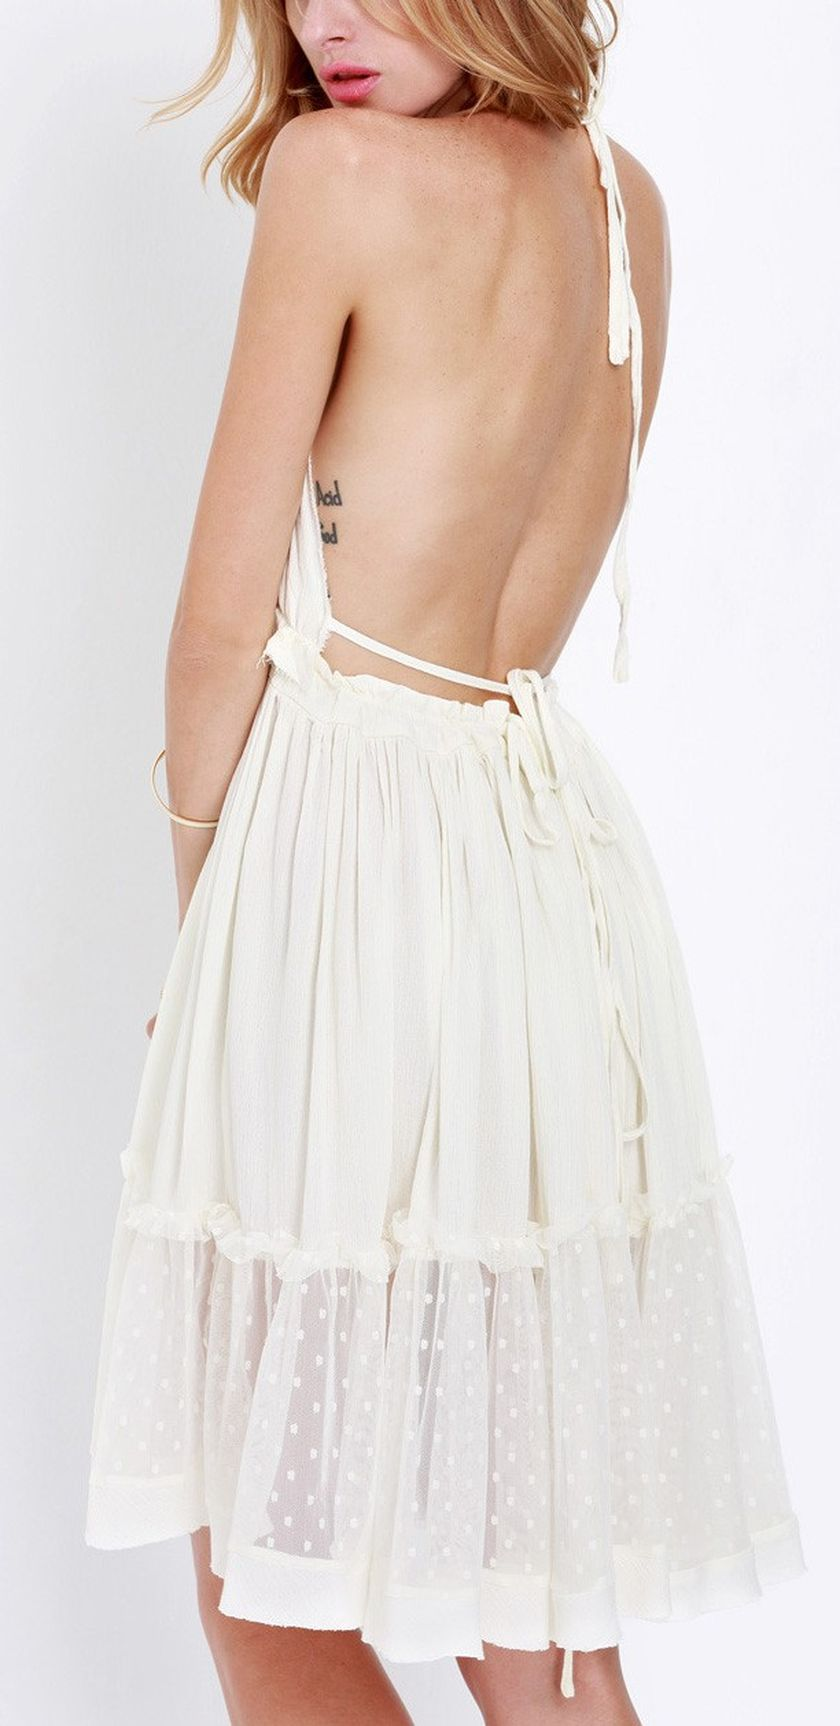 Summer Casual Backless Dresses Outfit Style 12 Fashion Best